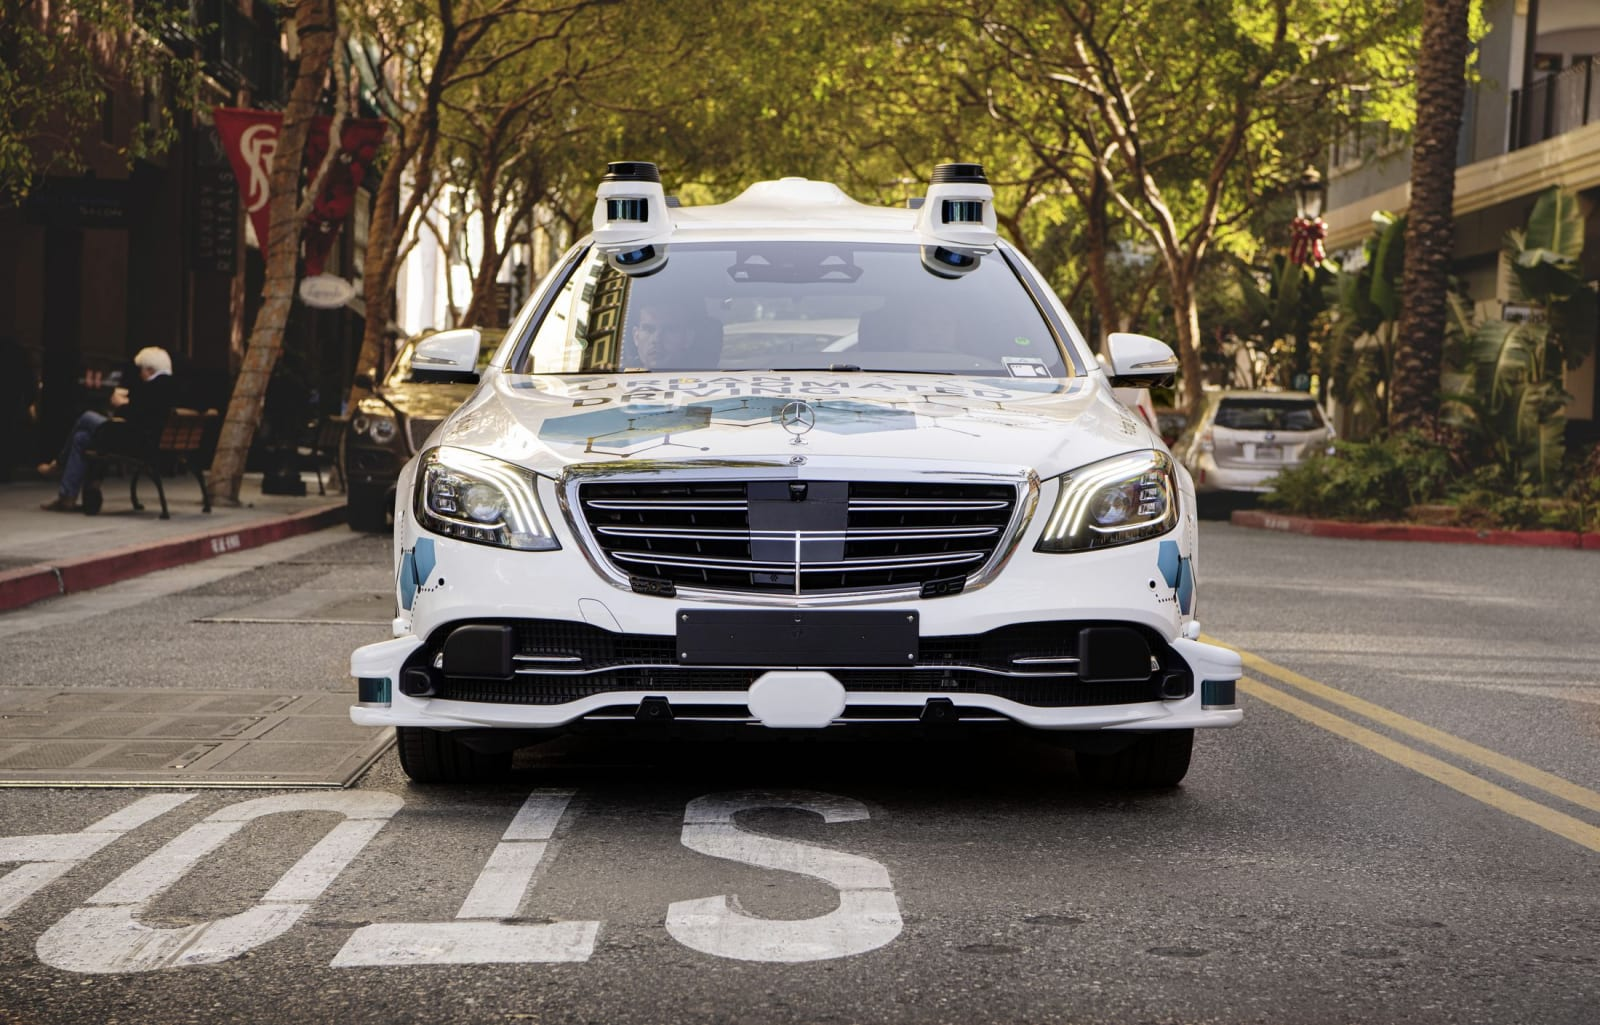 Mercedes-Benz and Bosch for an app-based ridesharing servic